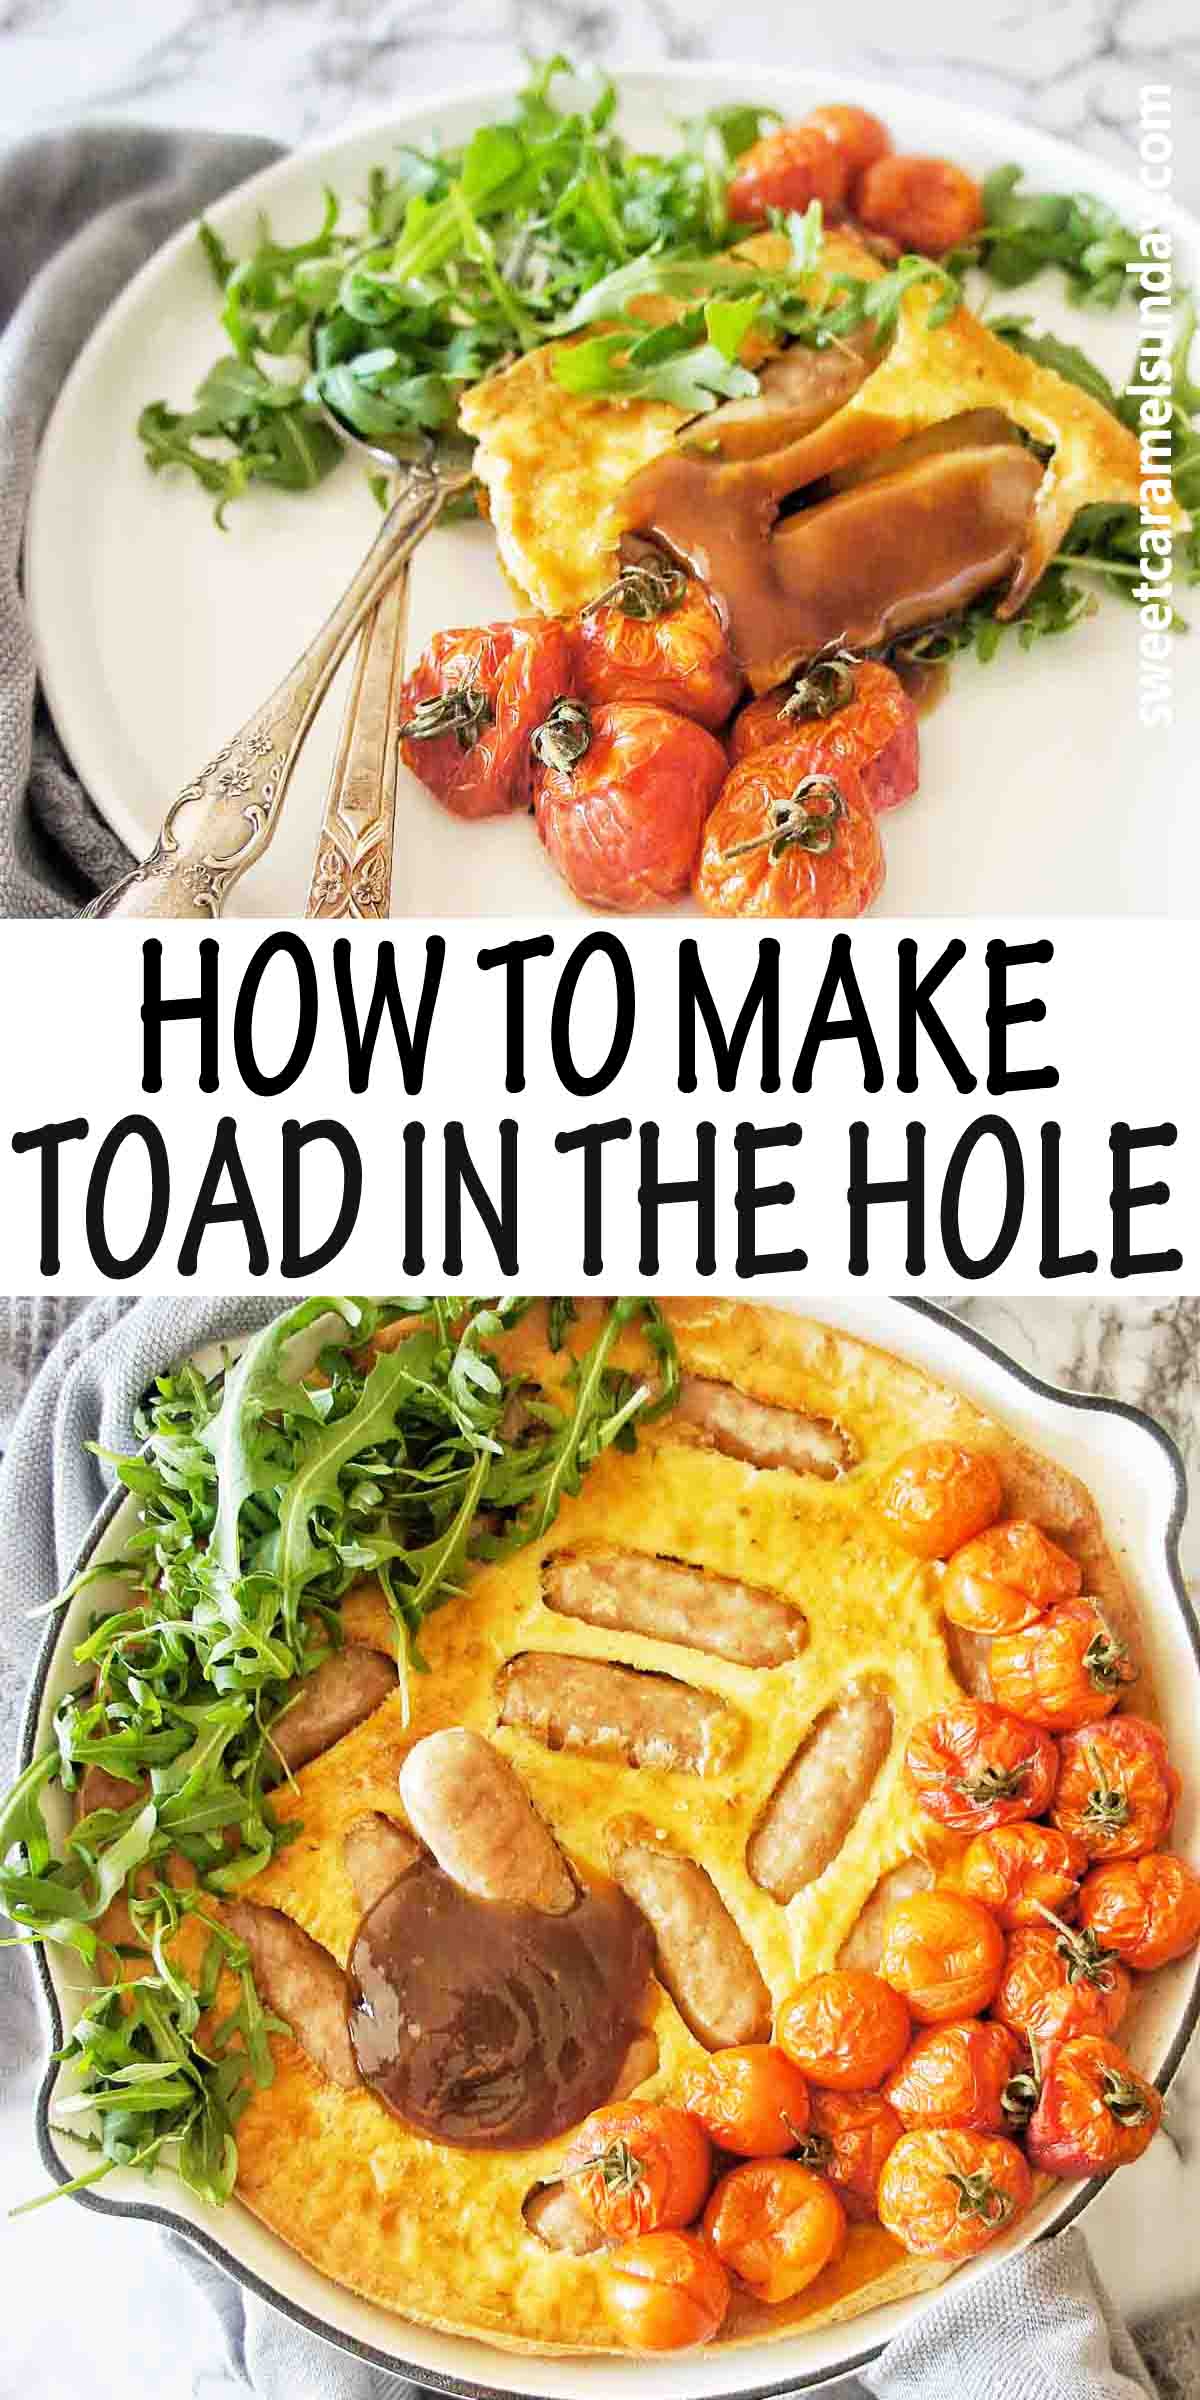 How to Make Toad in the Hole with text over lay